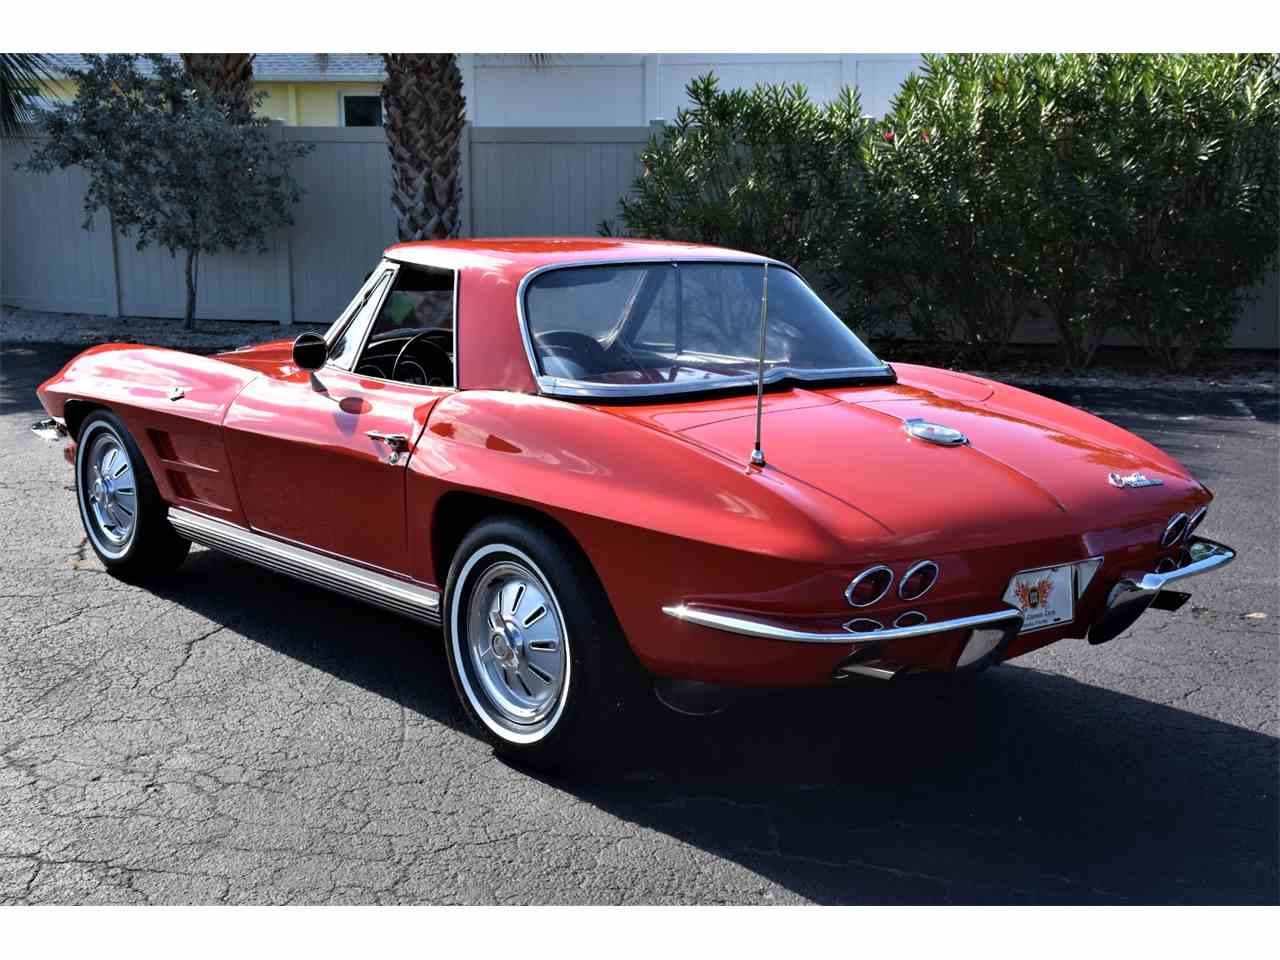 Large Picture of '64 Corvette located in Venice Florida Auction Vehicle Offered by Ideal Classic Cars - MCOS